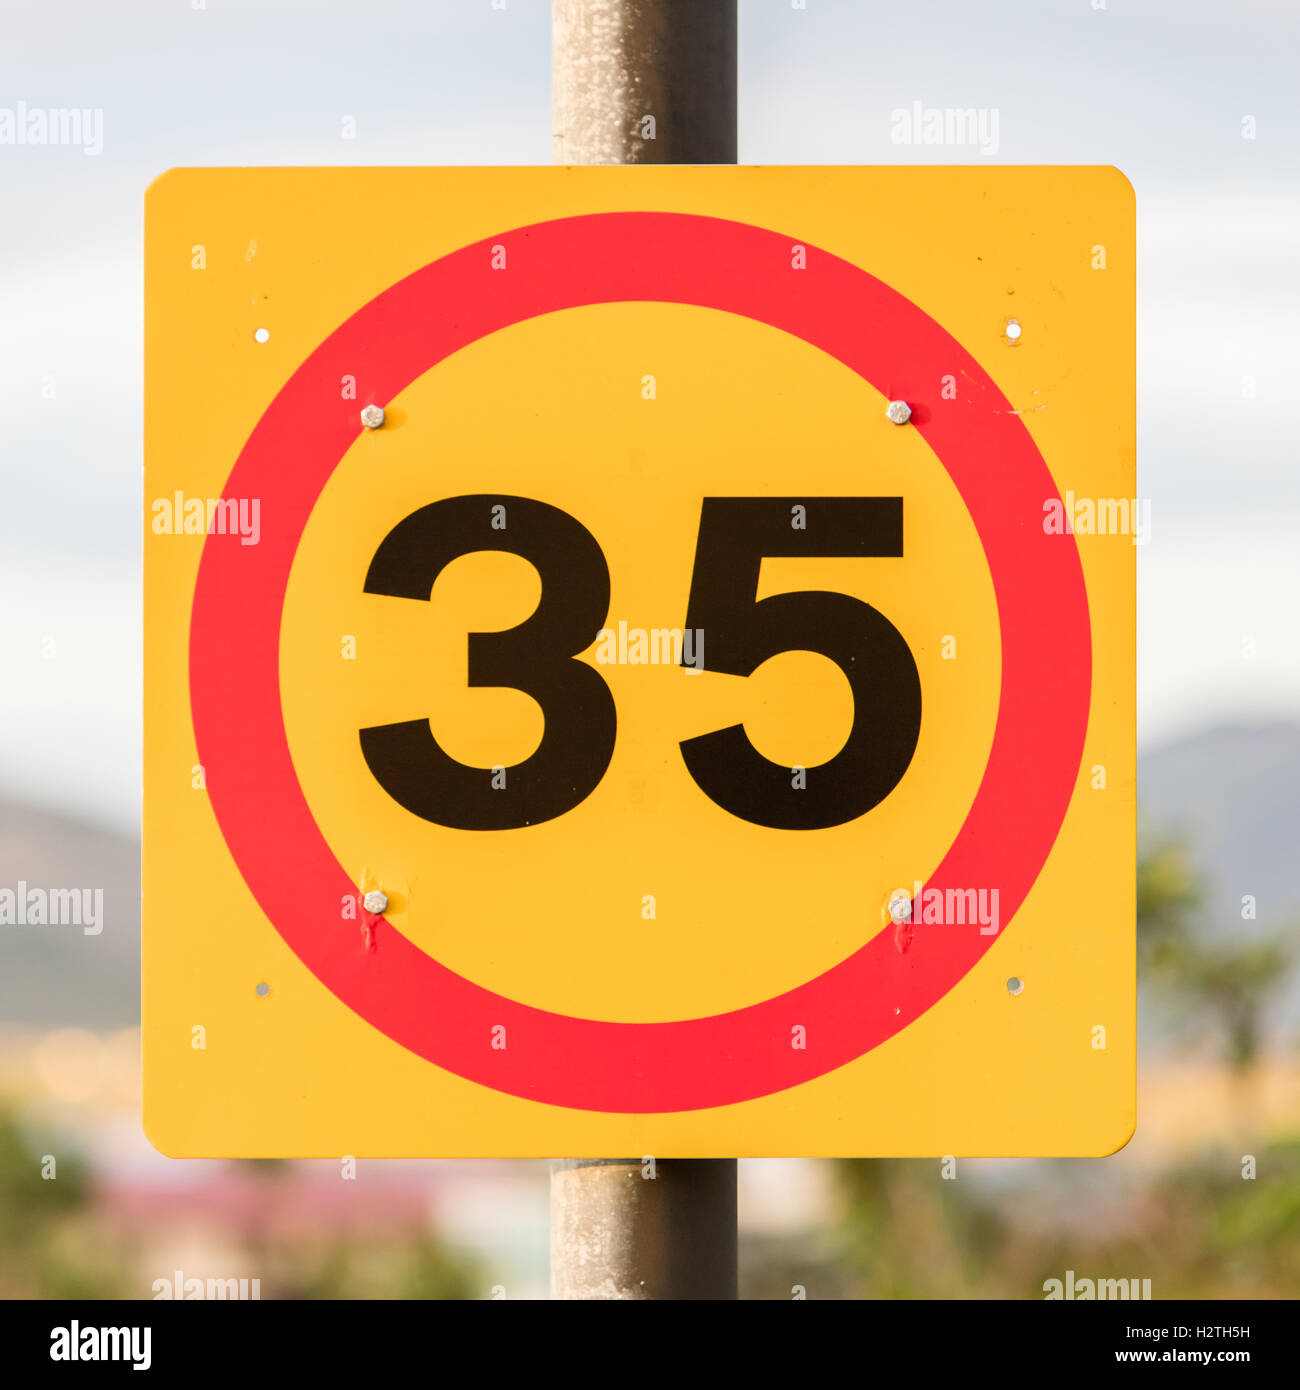 Icelandic traffic sign restricting speed to 35 kilometers per hour - Stock Image